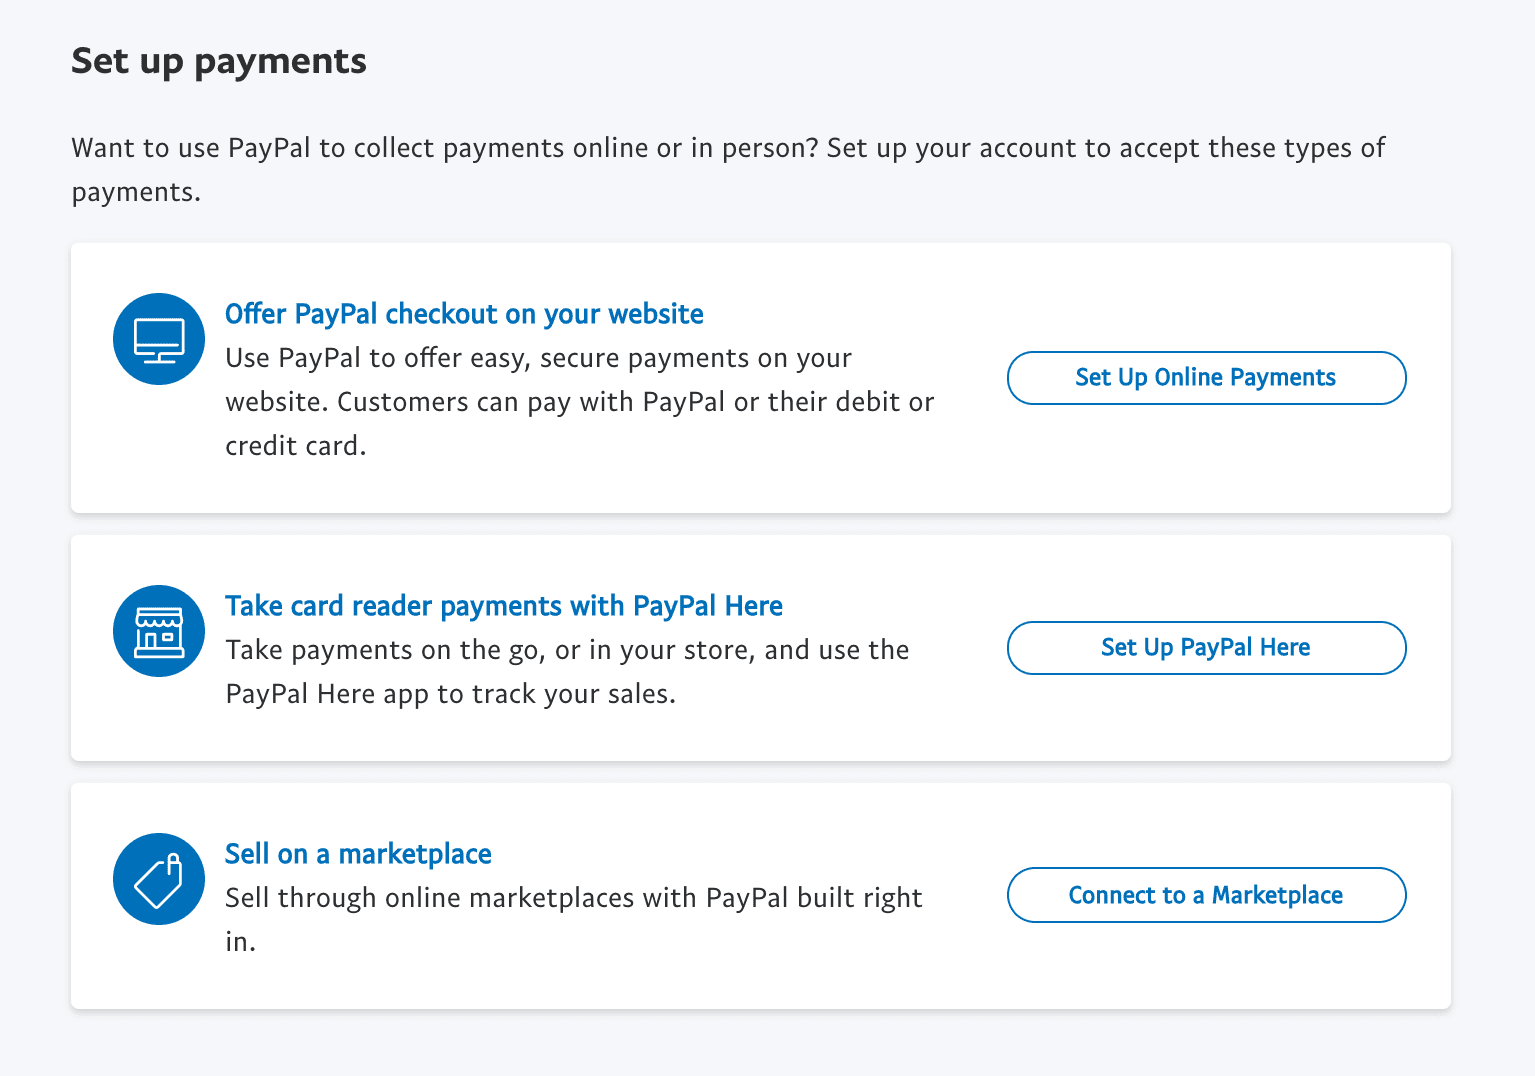 Set up PayPal payments